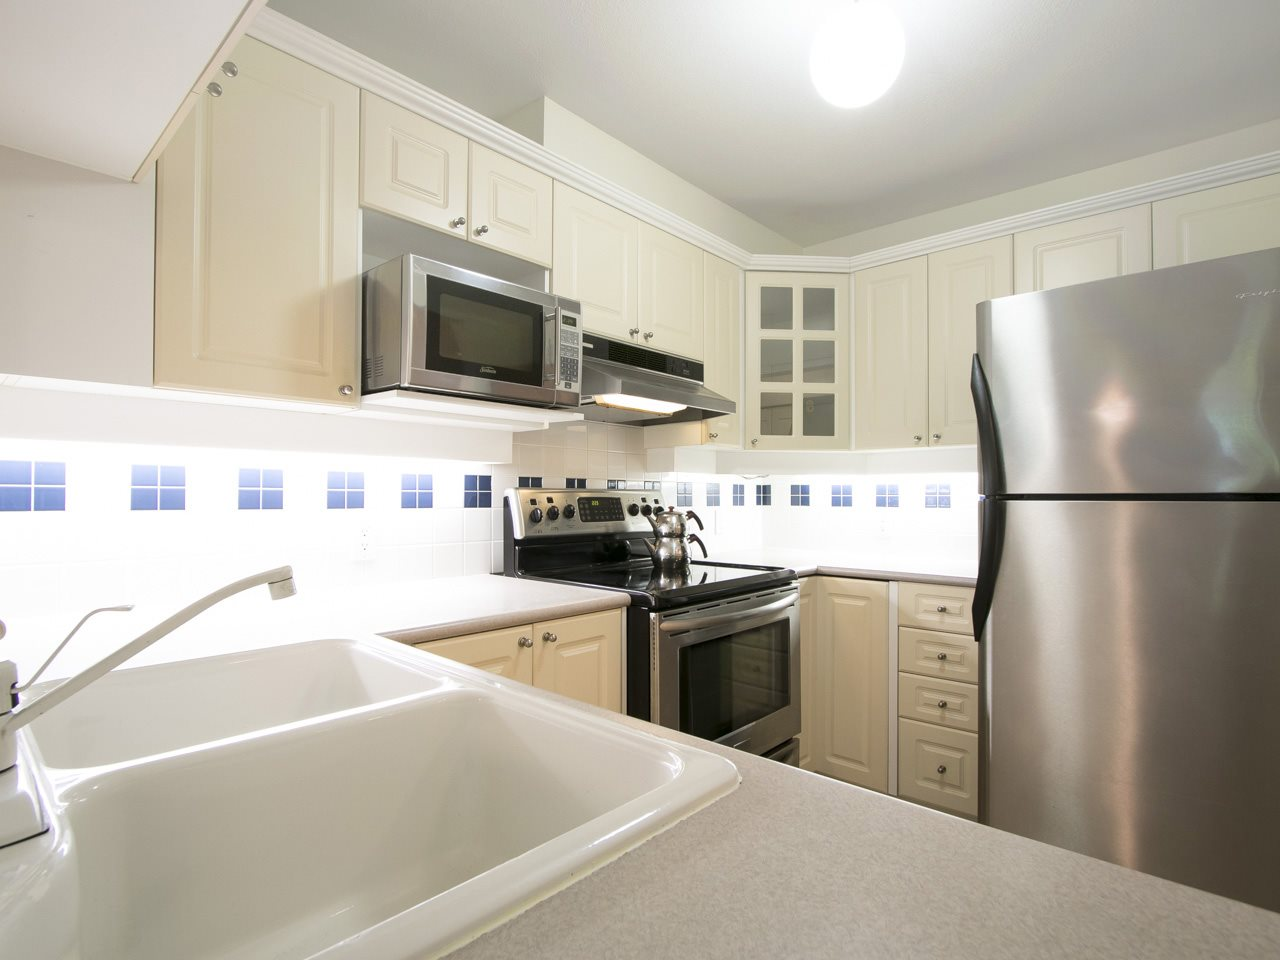 "Photo 10: 129 5500 ANDREWS Road in Richmond: Steveston South Condo for sale in ""SOUTHWATER"" : MLS(r) # R2100908"